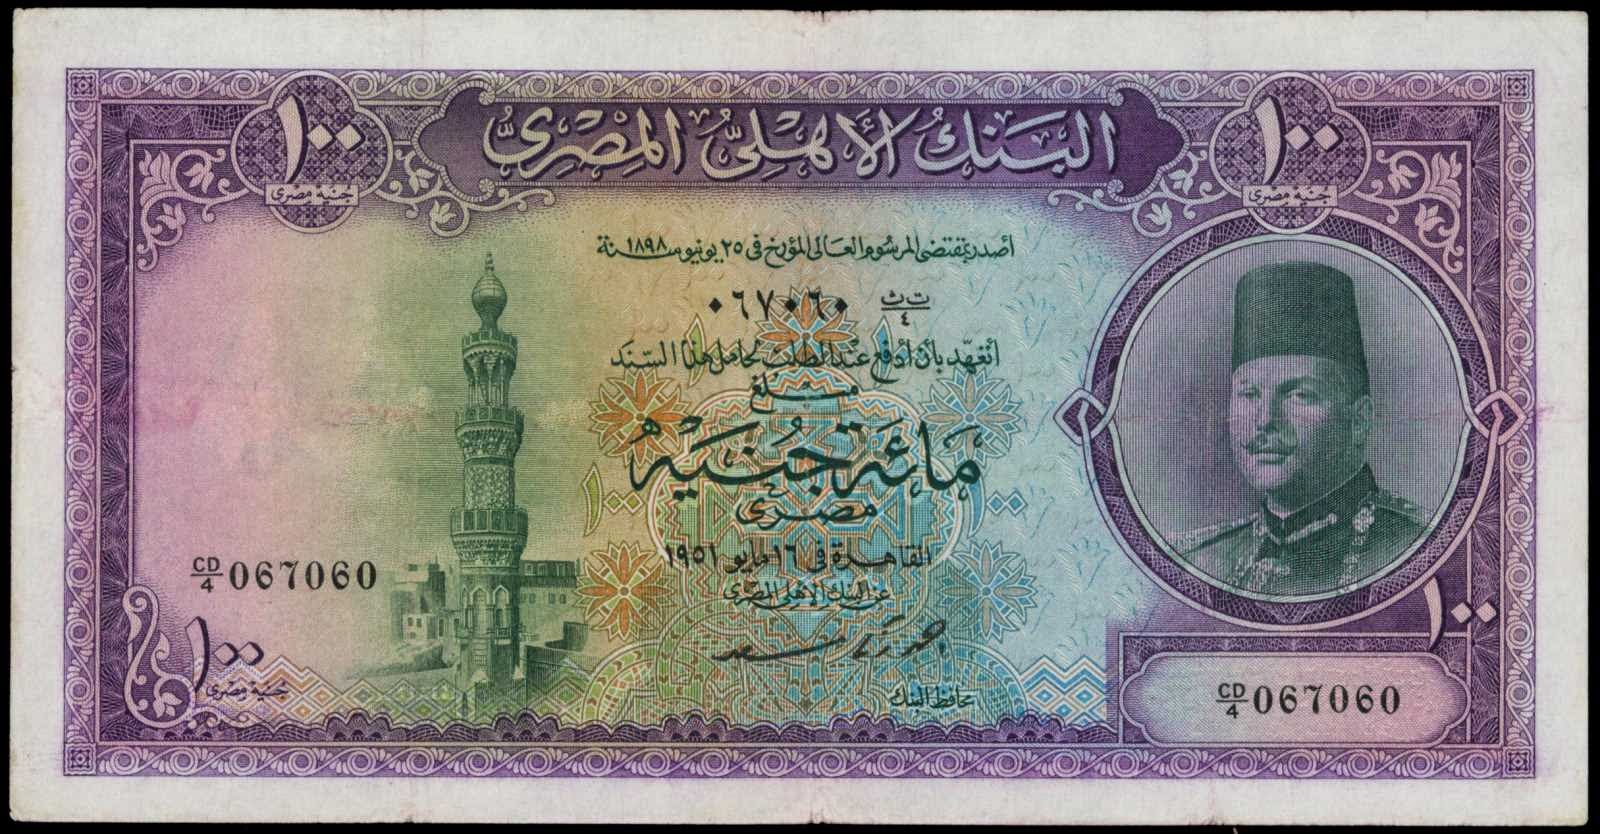 Egypt banknotes 100 Pounds currency notes King Farouk